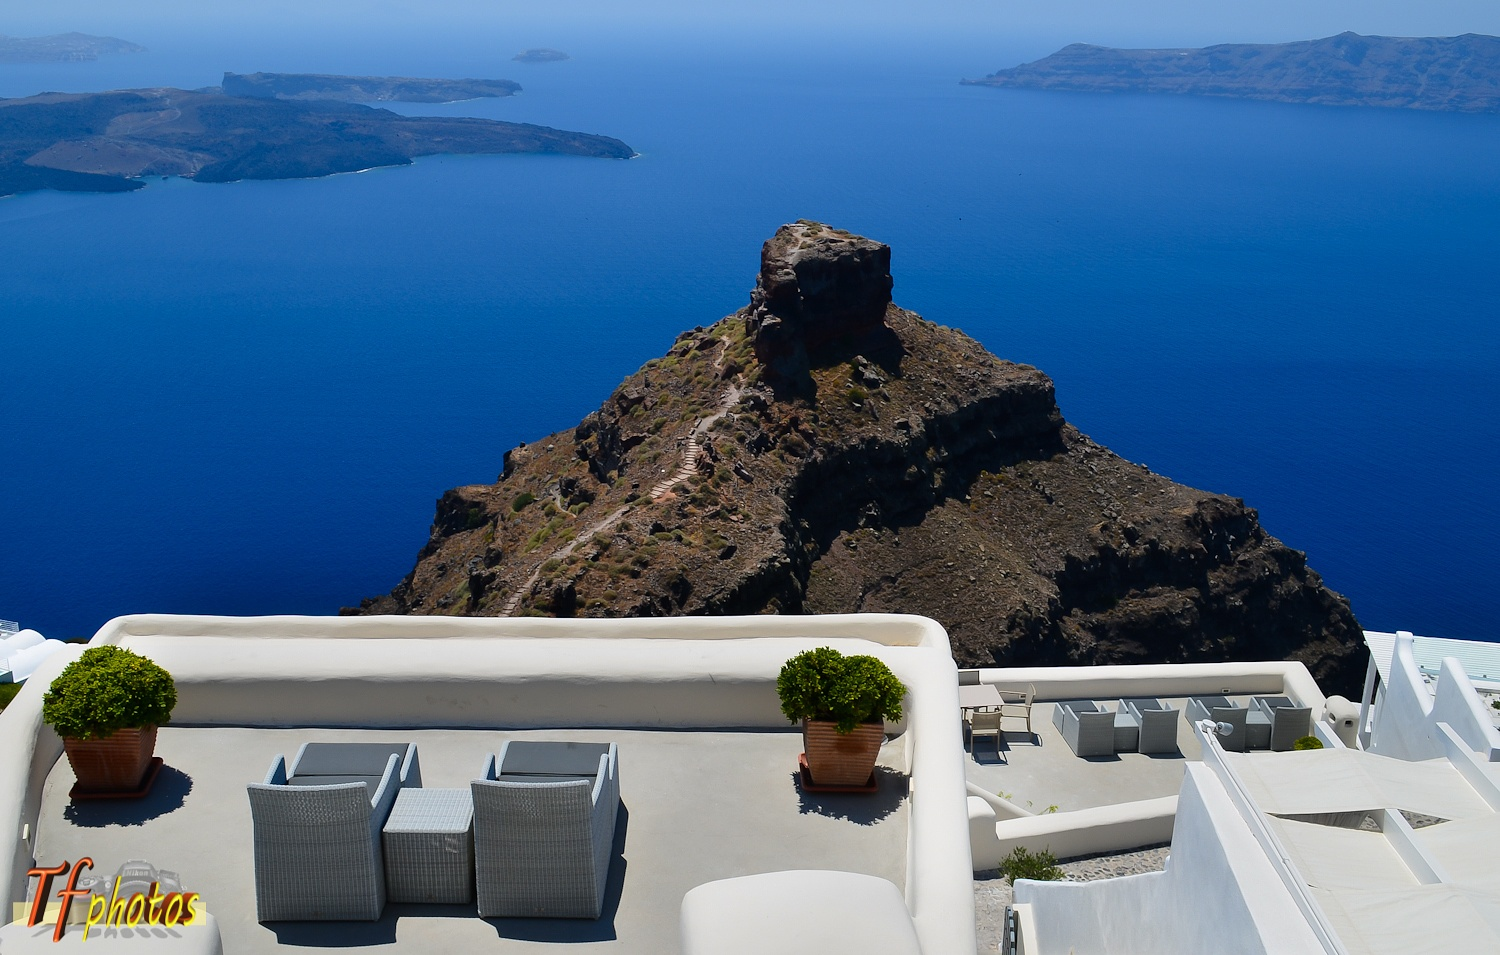 ....relaxing view by imagecreation.gr (Theo)